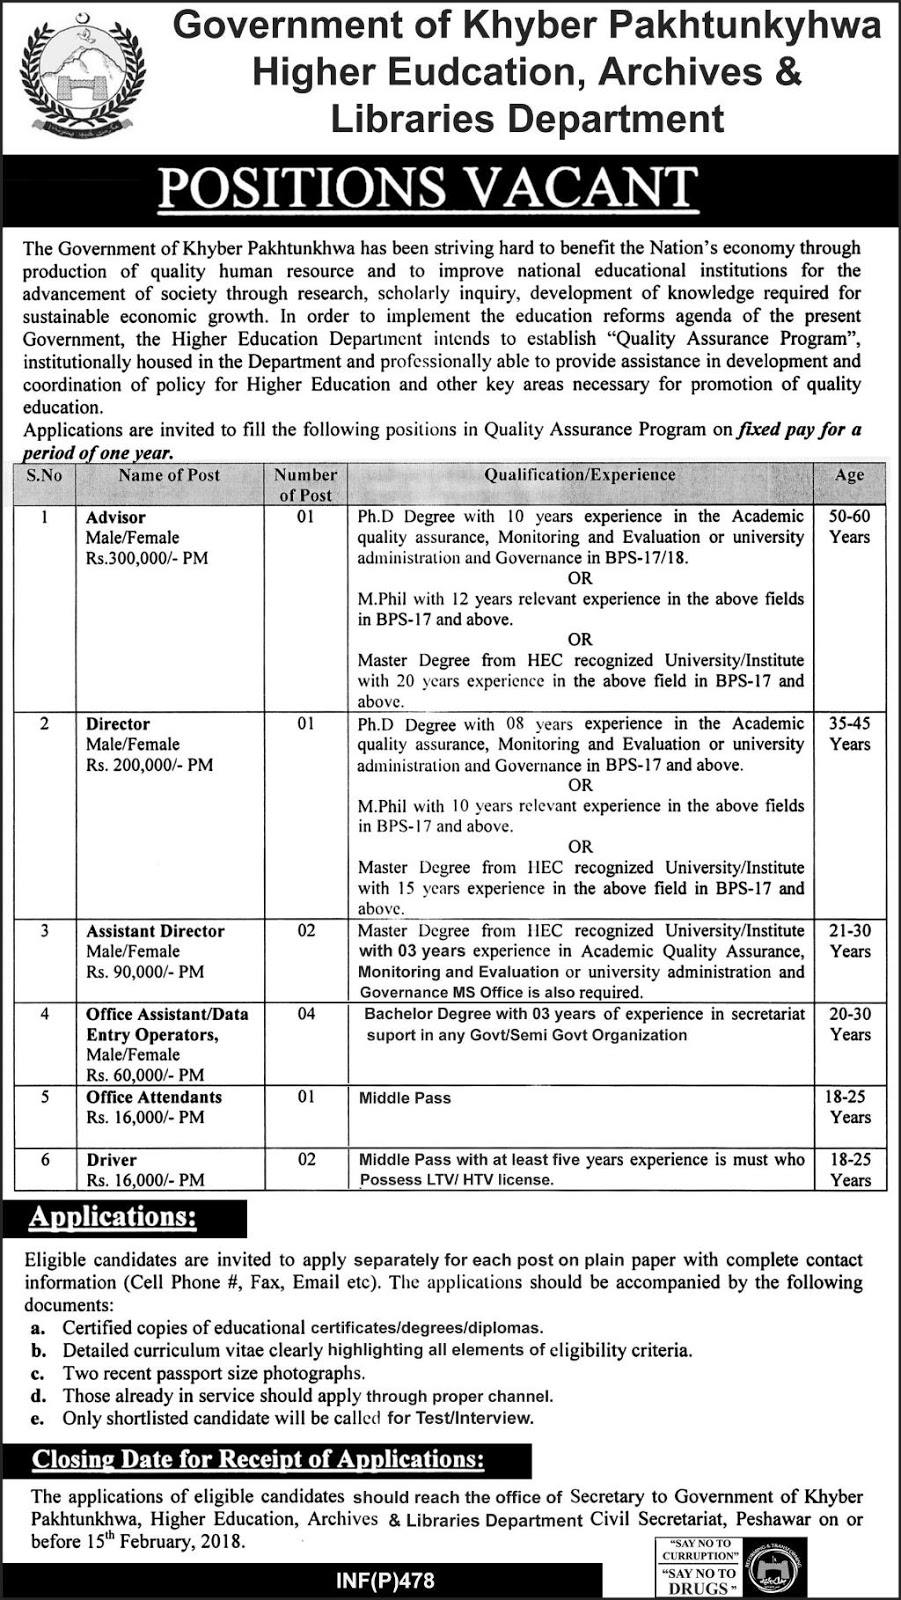 Jobs In Higher Education Archives and Libraries Department Peshawar January 2018